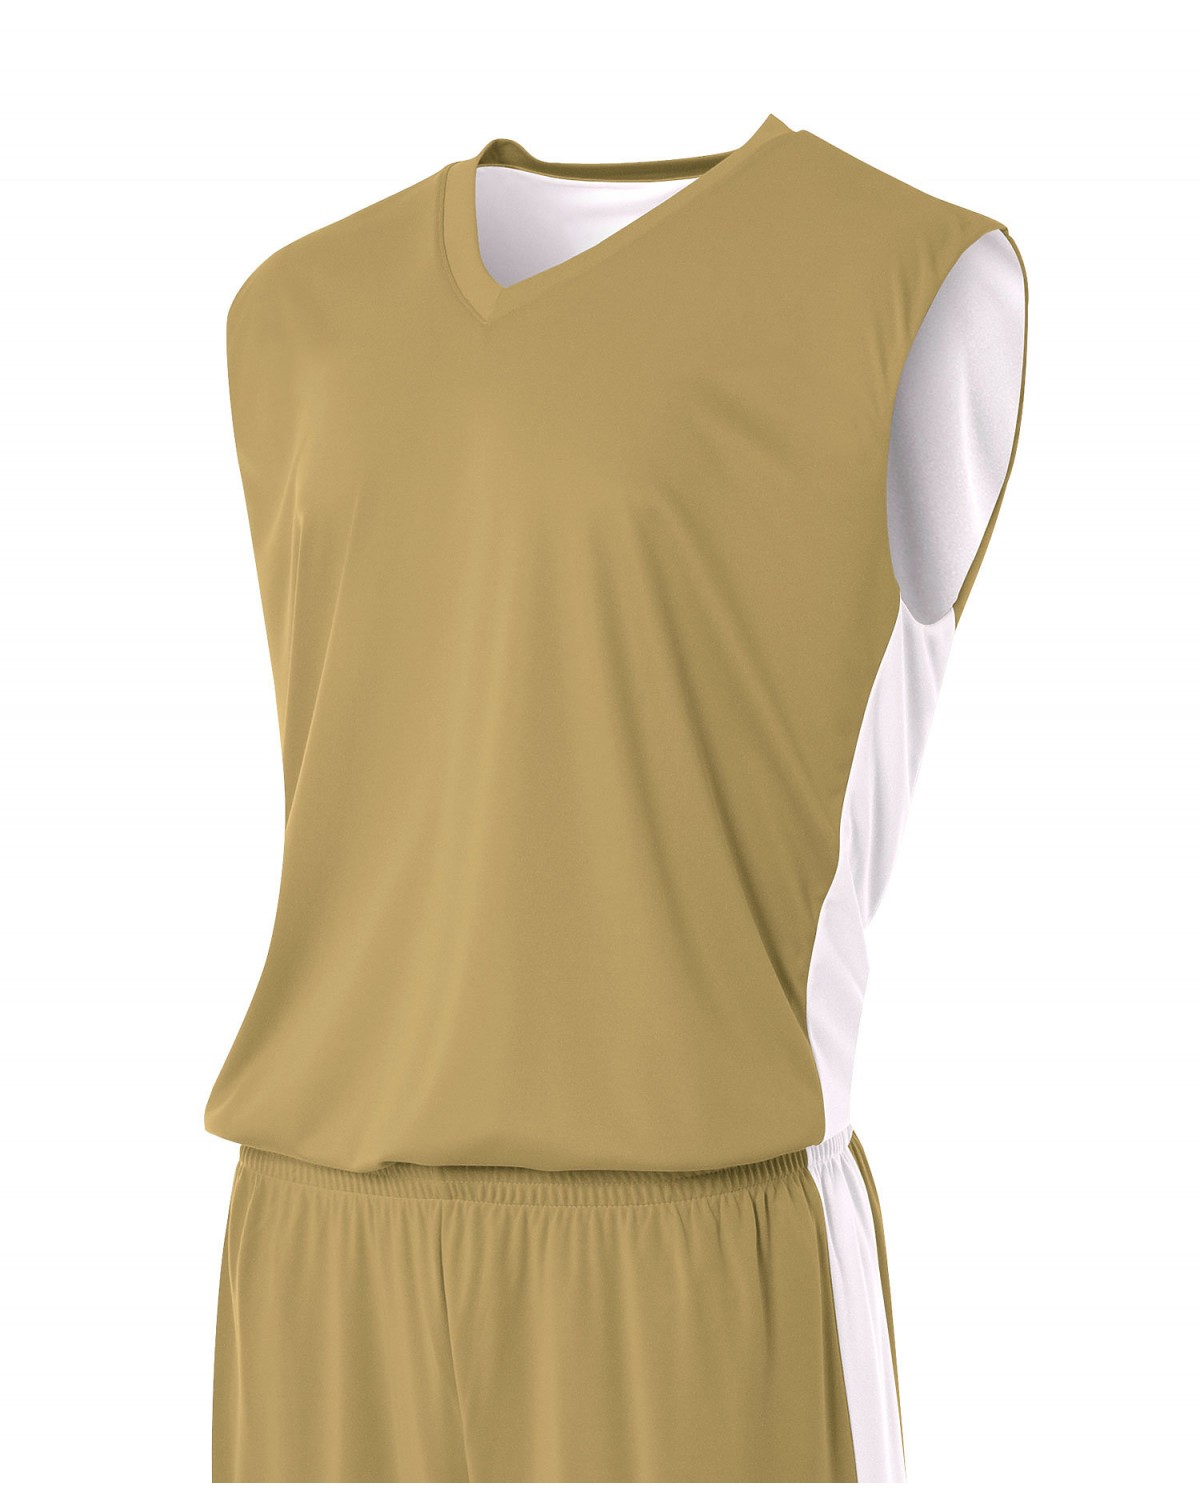 56REVY Alleson Athletic Royal/Light Gold